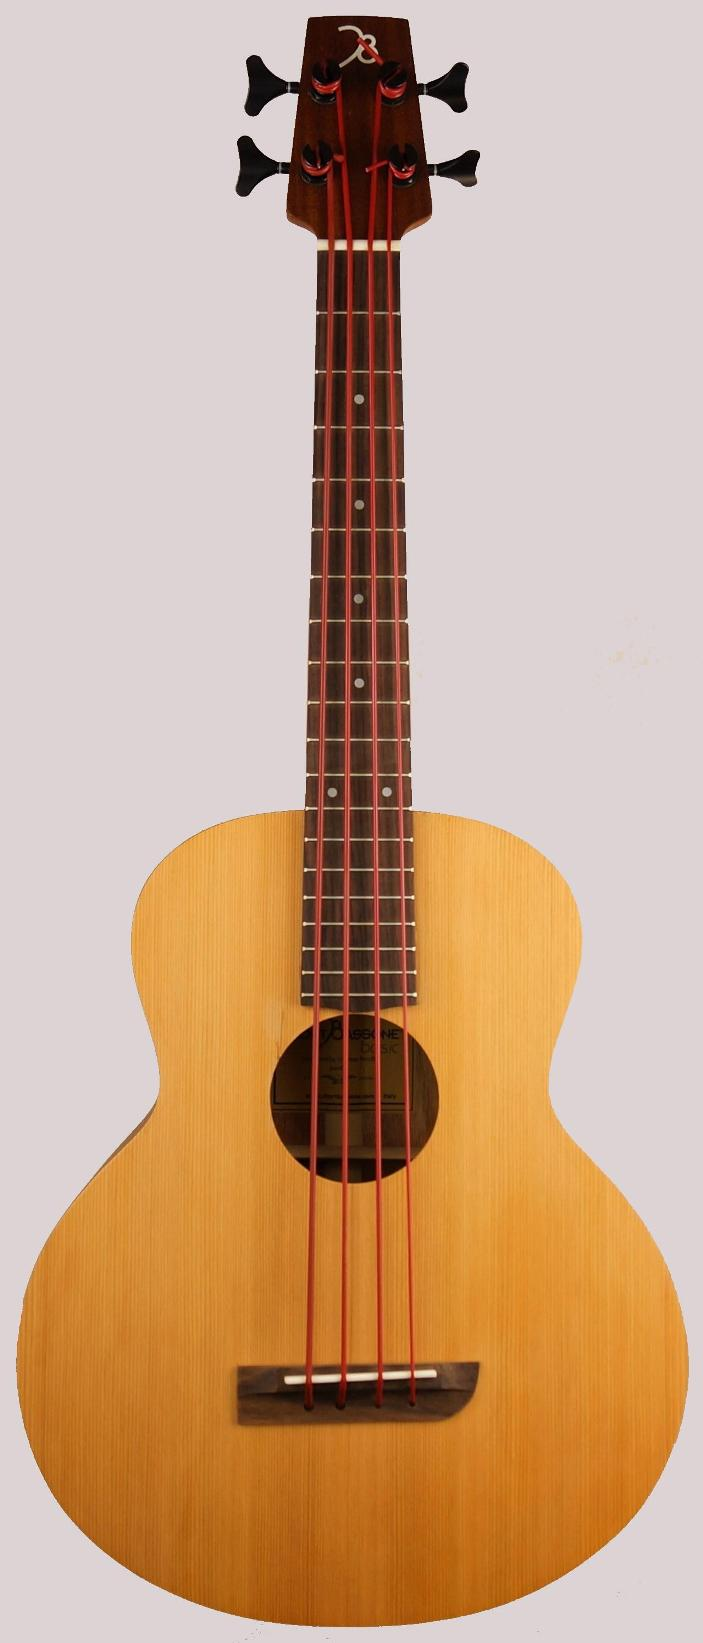 aquila 23 inc short bass 1 at Ukulele corner